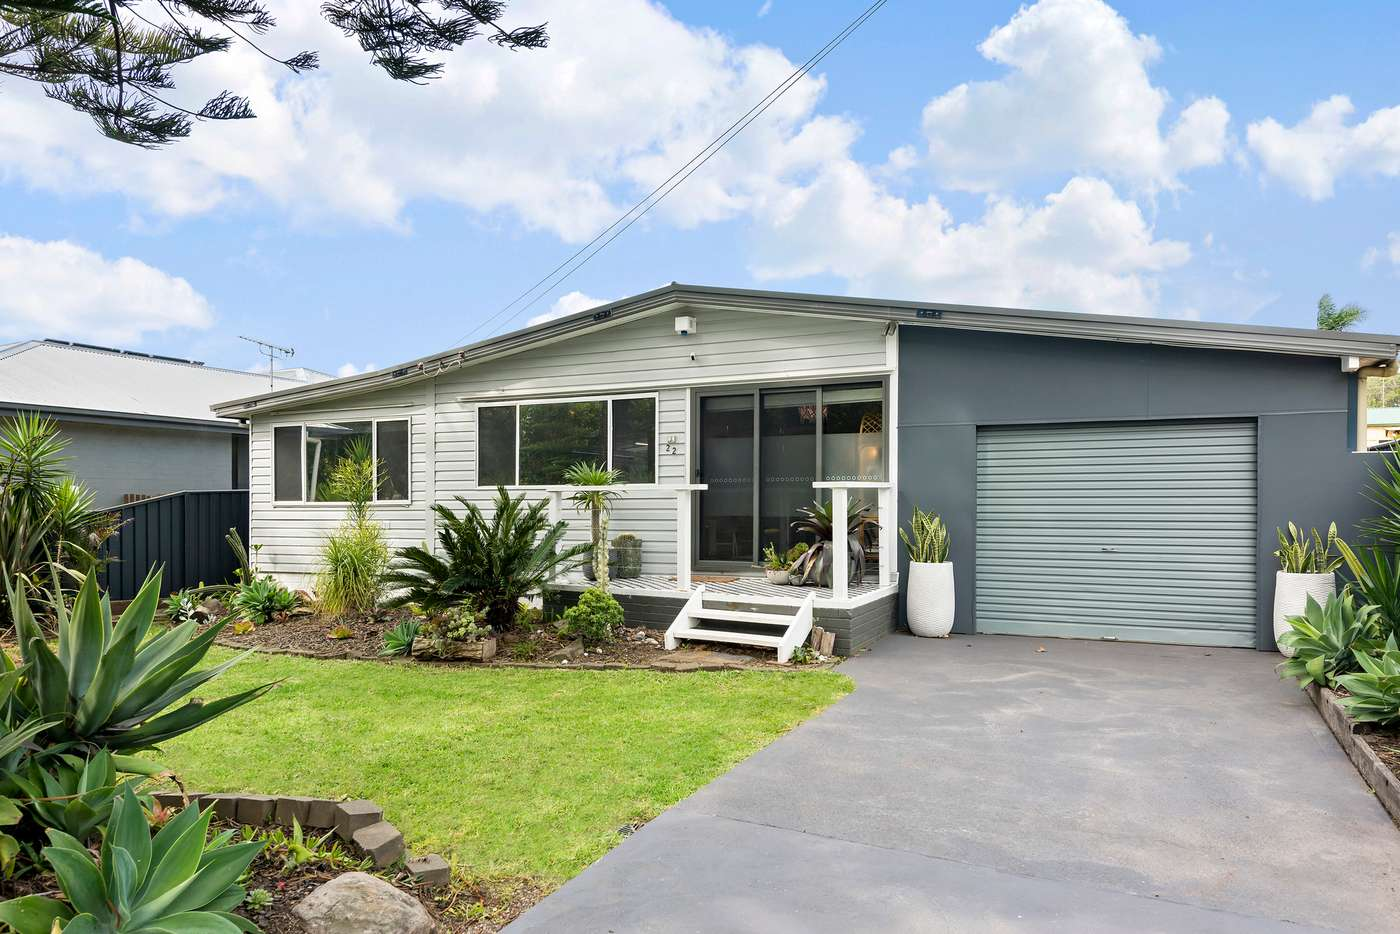 Sixth view of Homely house listing, 22 Central Avenue, Oak Flats NSW 2529